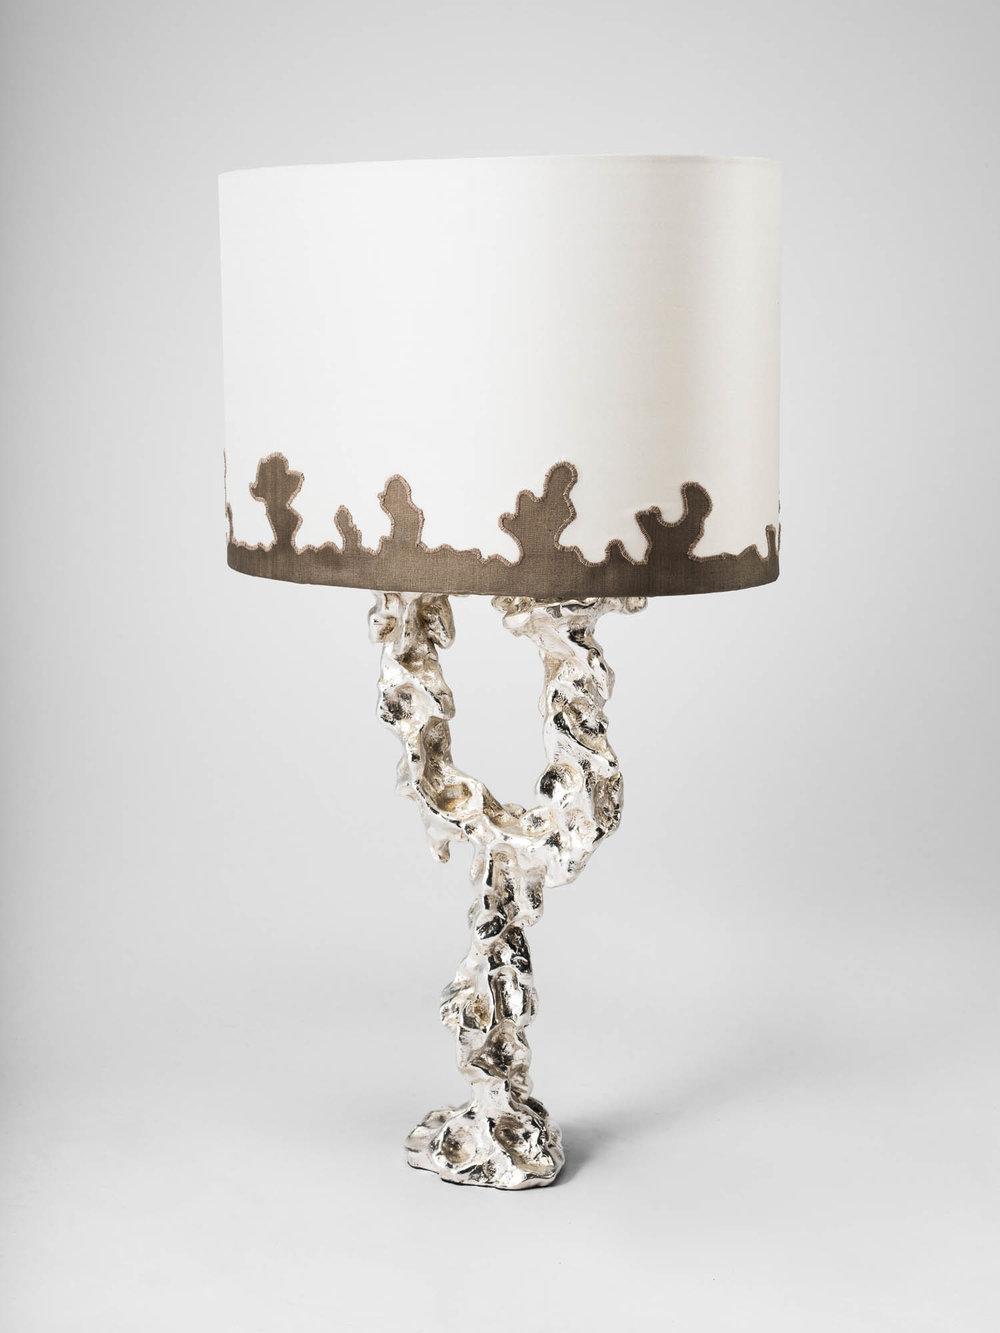 2. MB Table Lamp 'Grotto'.jpg